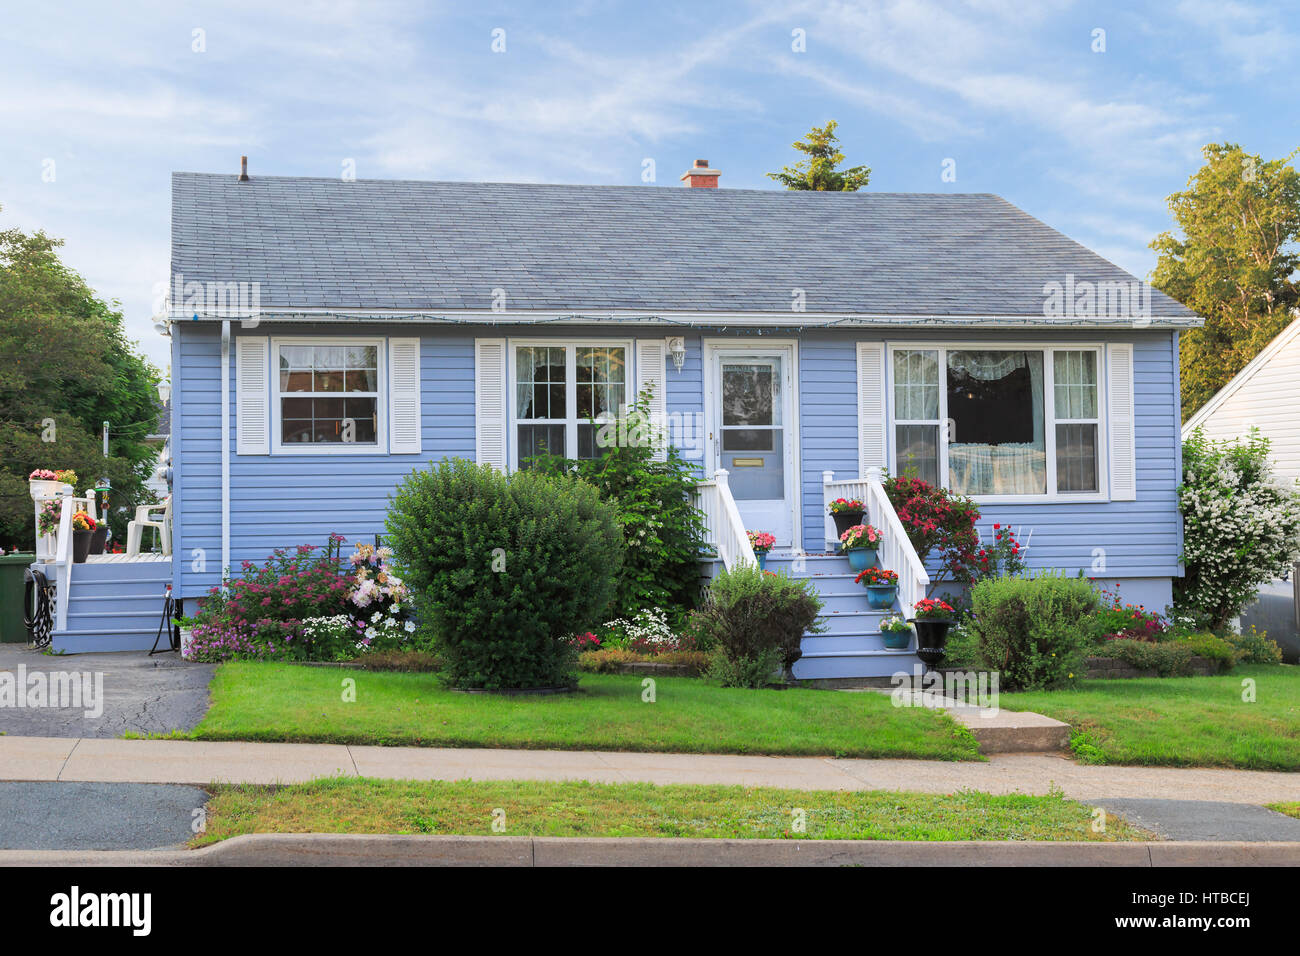 Well kept bungalow from the 60s or later. - Stock Image